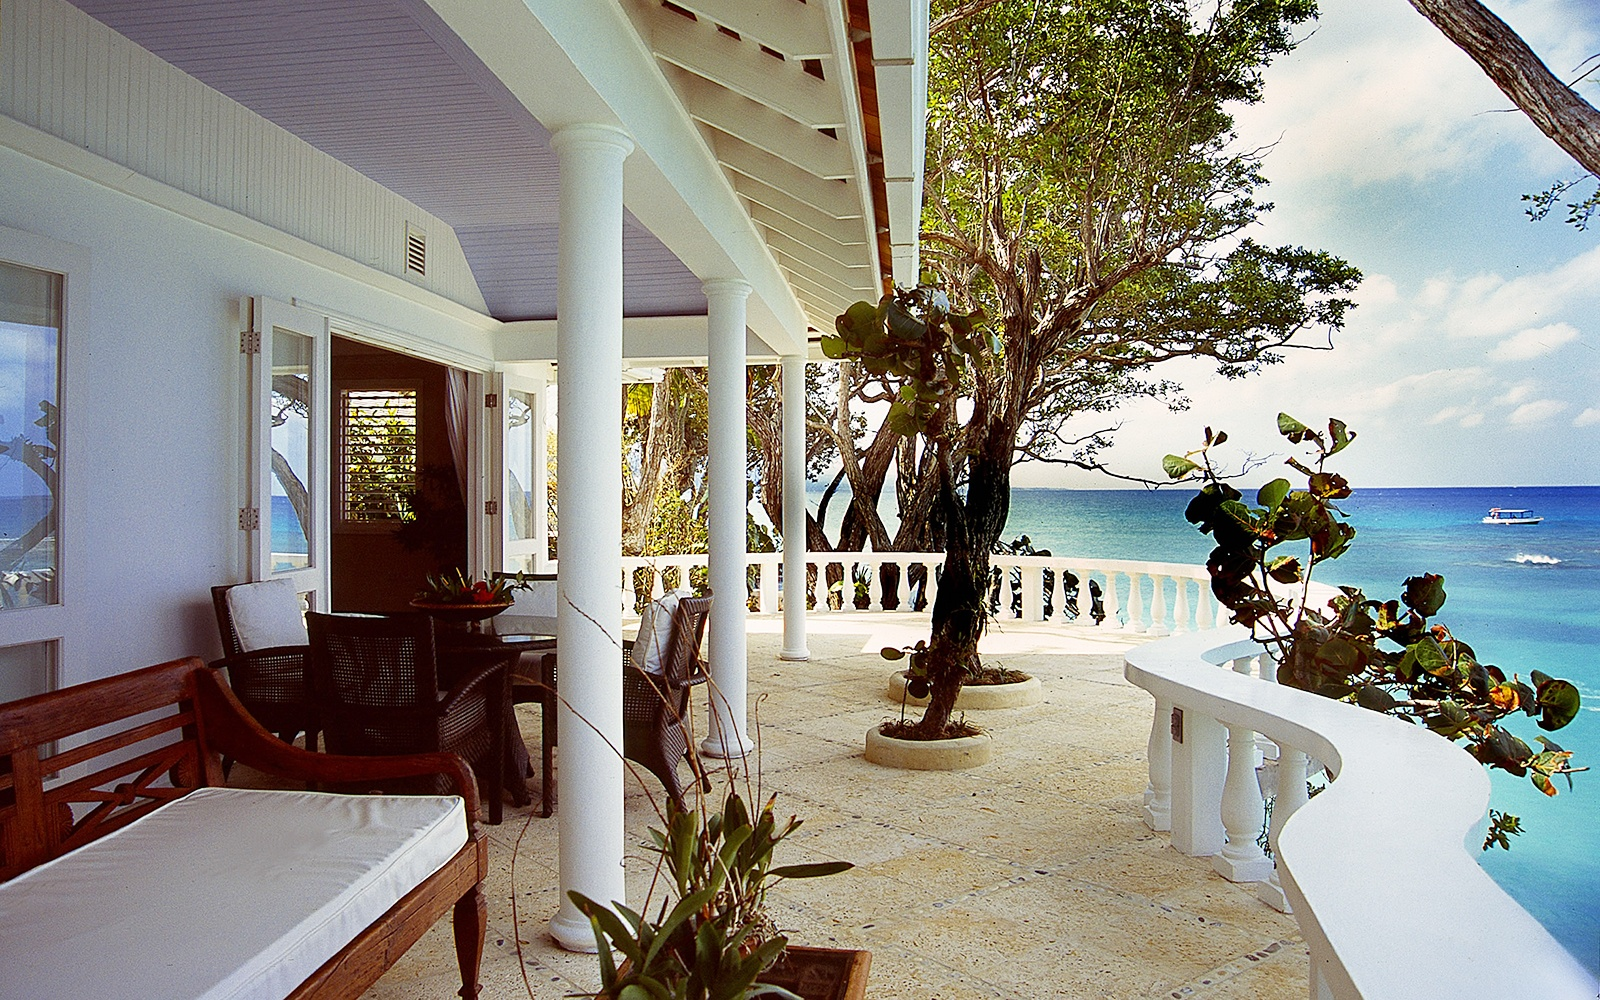 ocean view terrace at Jamaica Inn in Ocho Rios, Jamaica